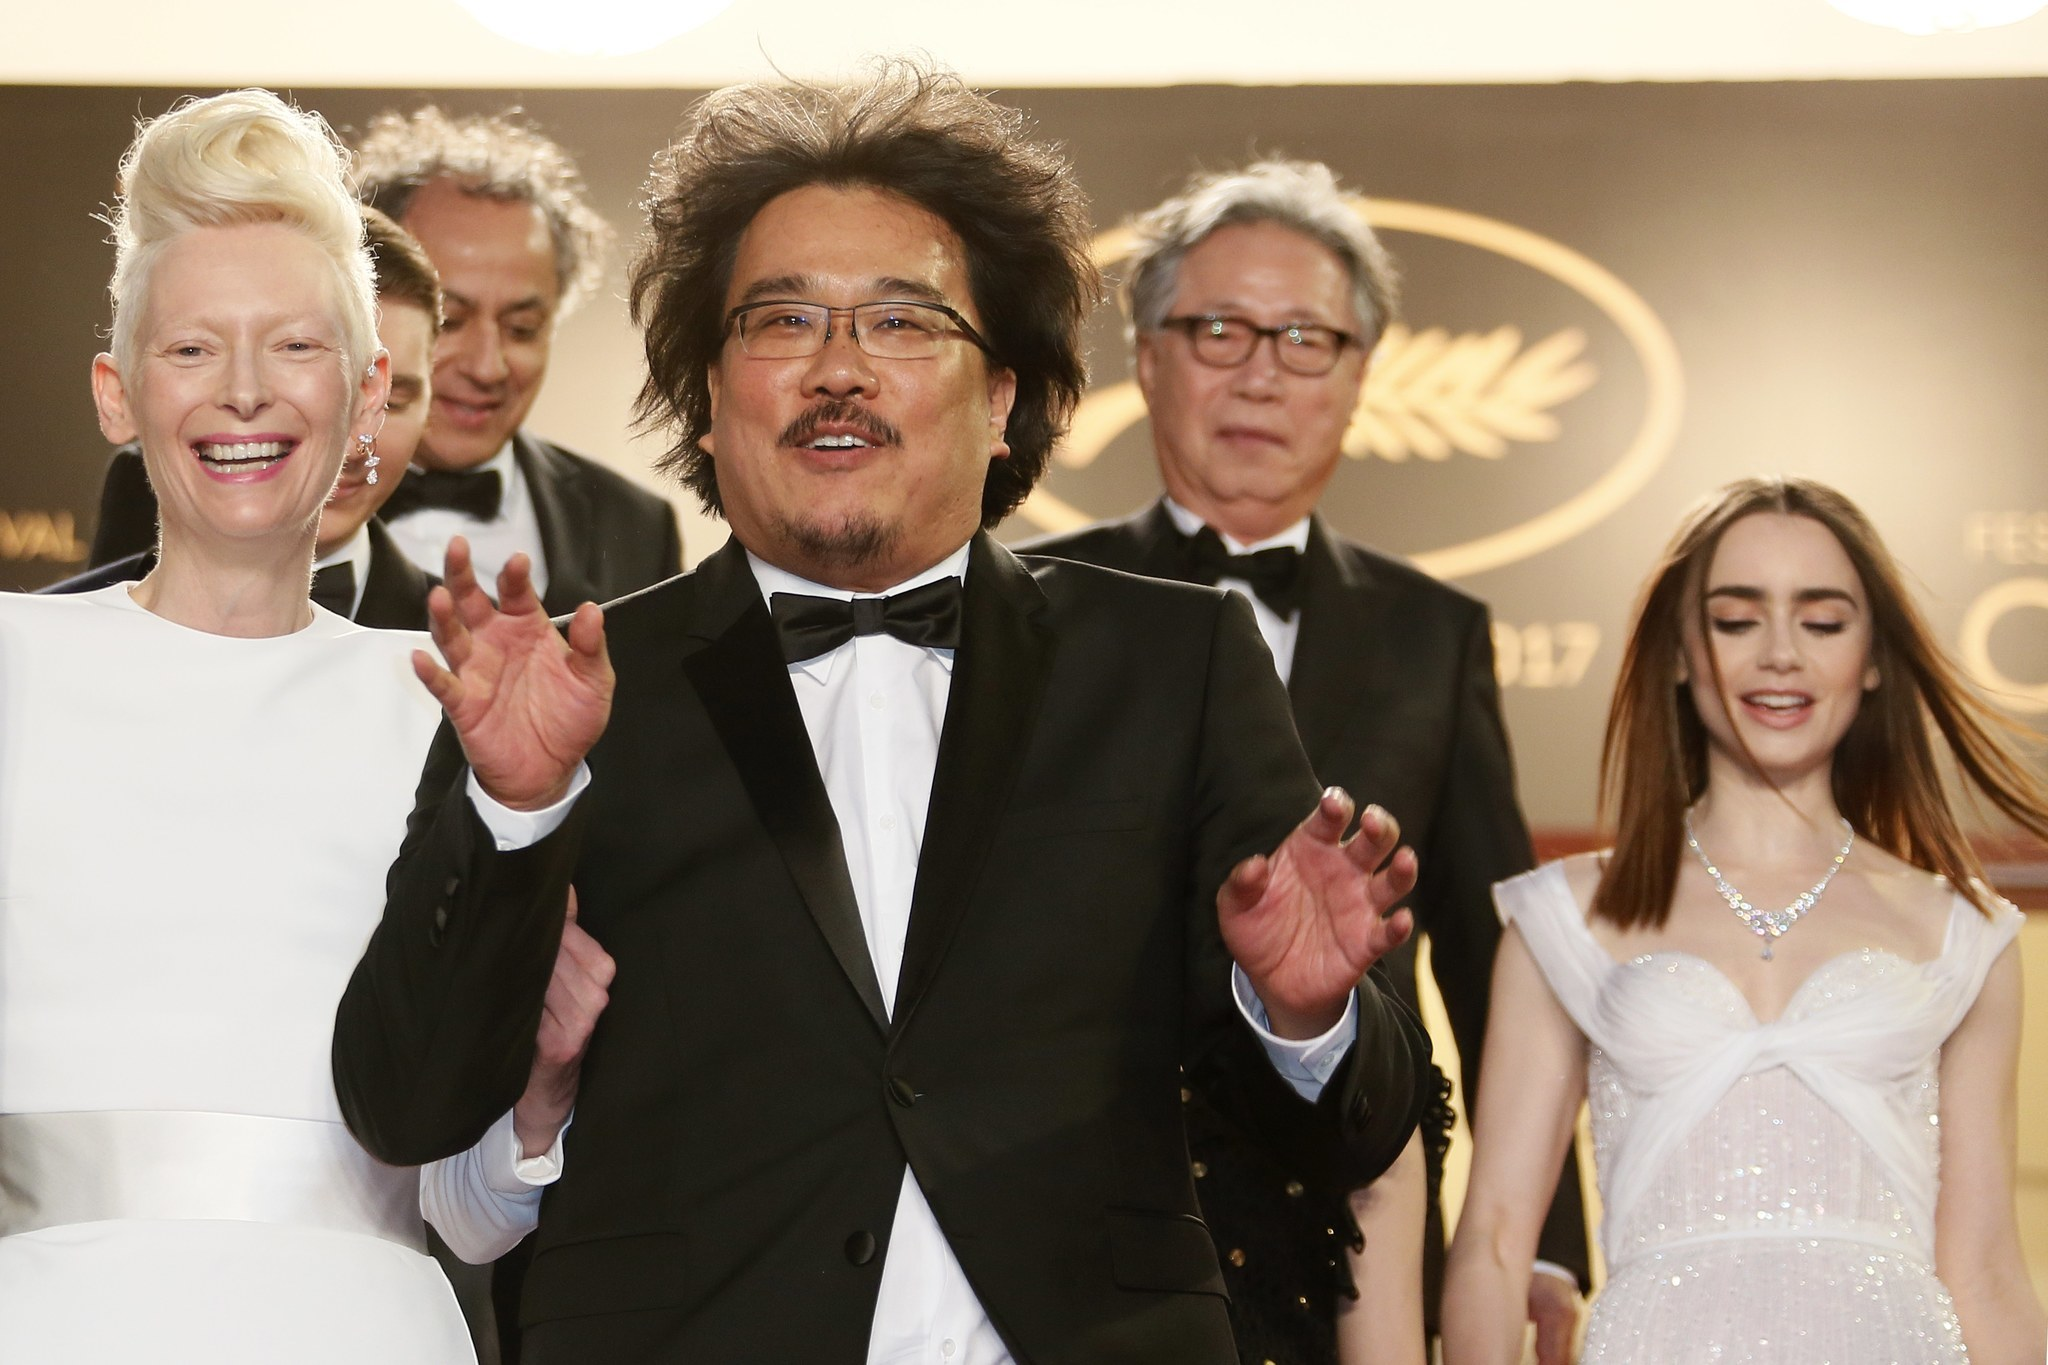 Actress Tilda Swinton, director Bong Joon-ho, actor Byung Heebong and actress Lily Collins at the premiere of 'Okja' during the 70th annual Cannes Film Festival.